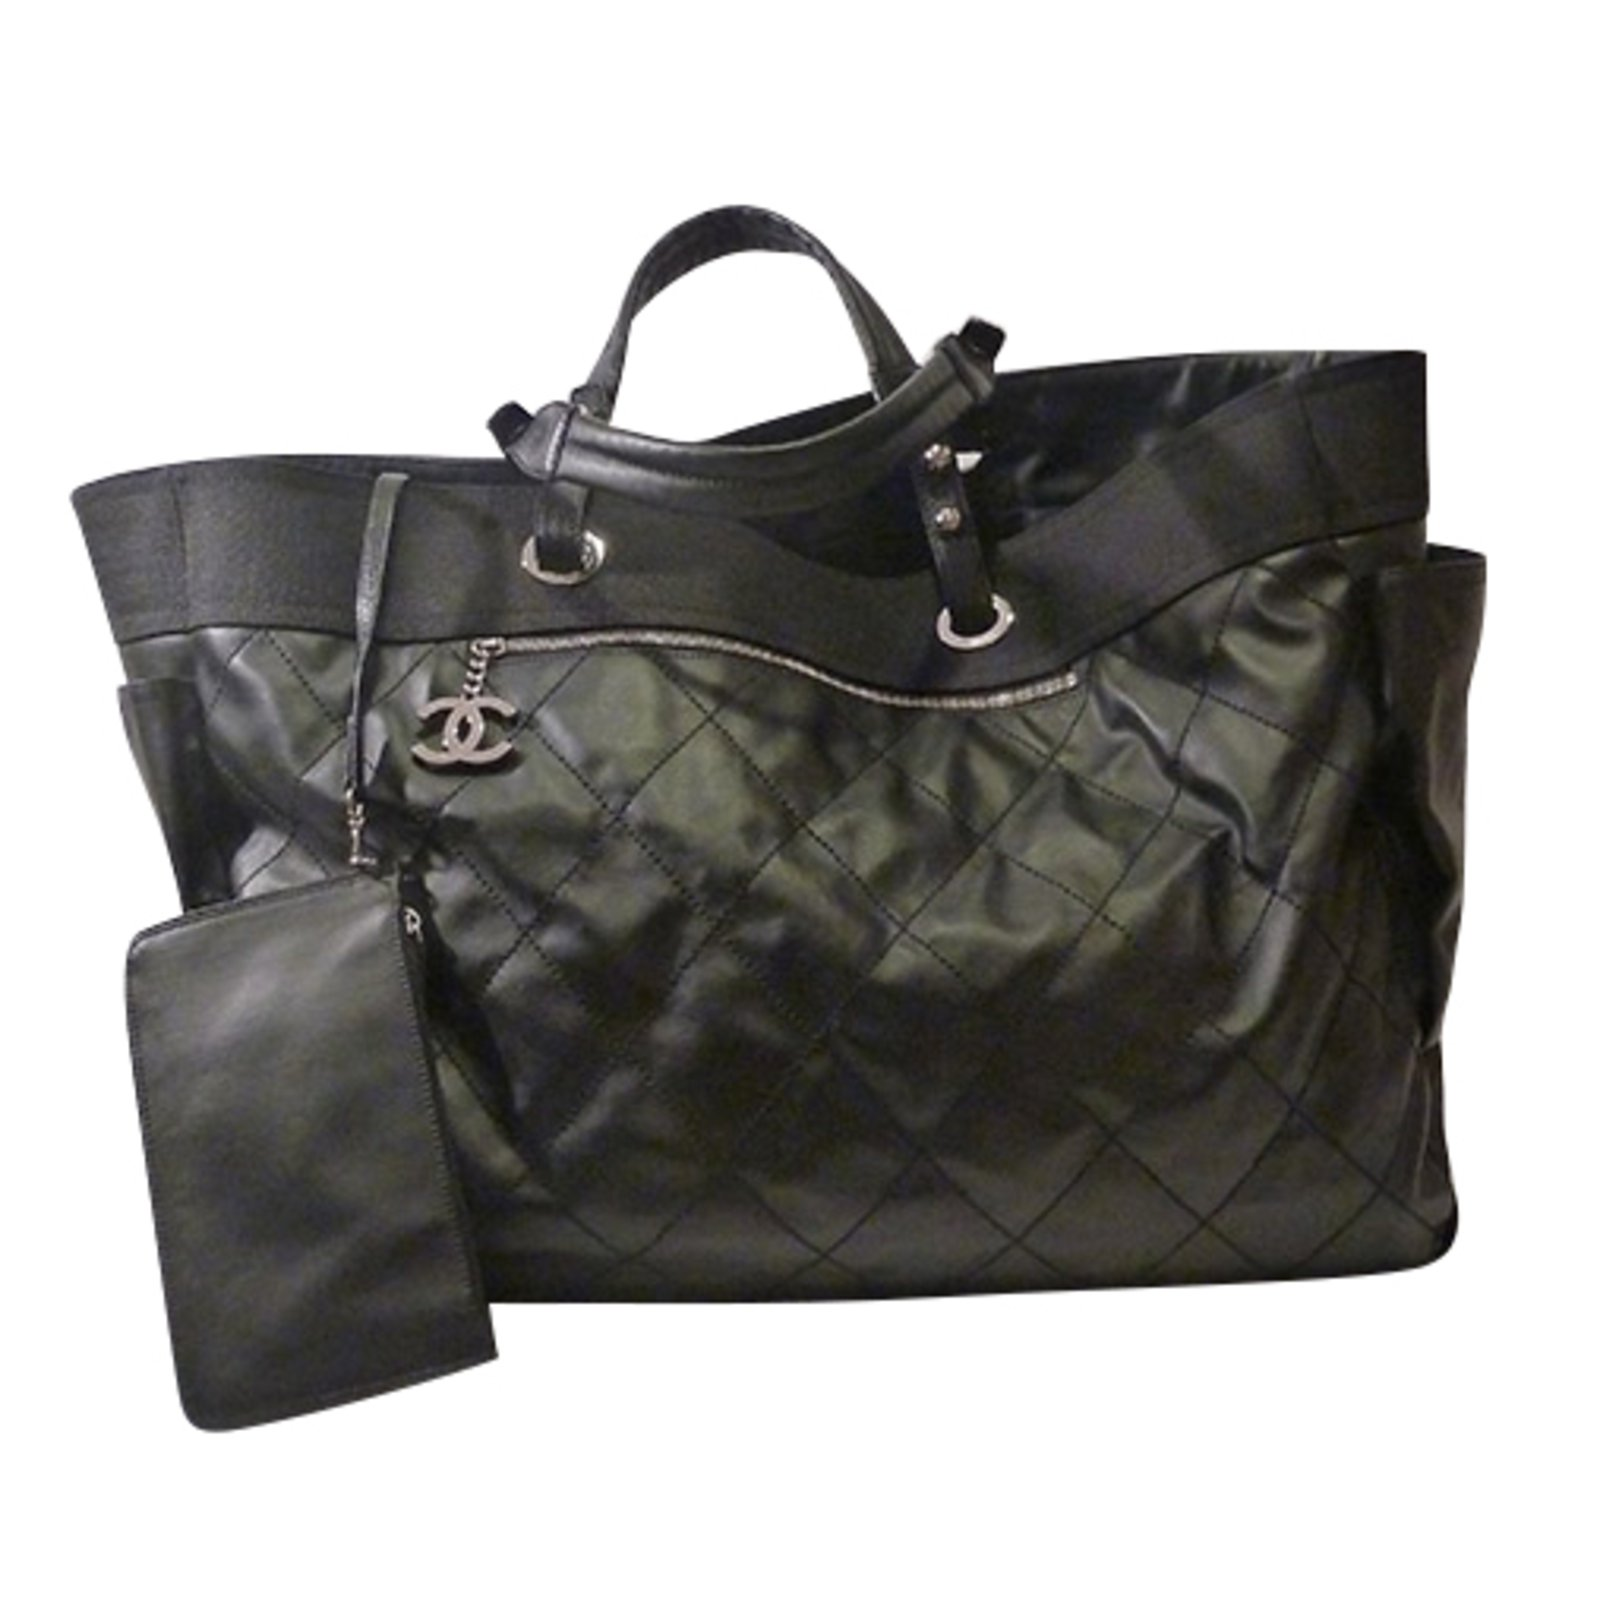 6854898ae4aa Chanel Chanel Paris Biarritz Tote Bag Totes Other Black ref.49029 ...